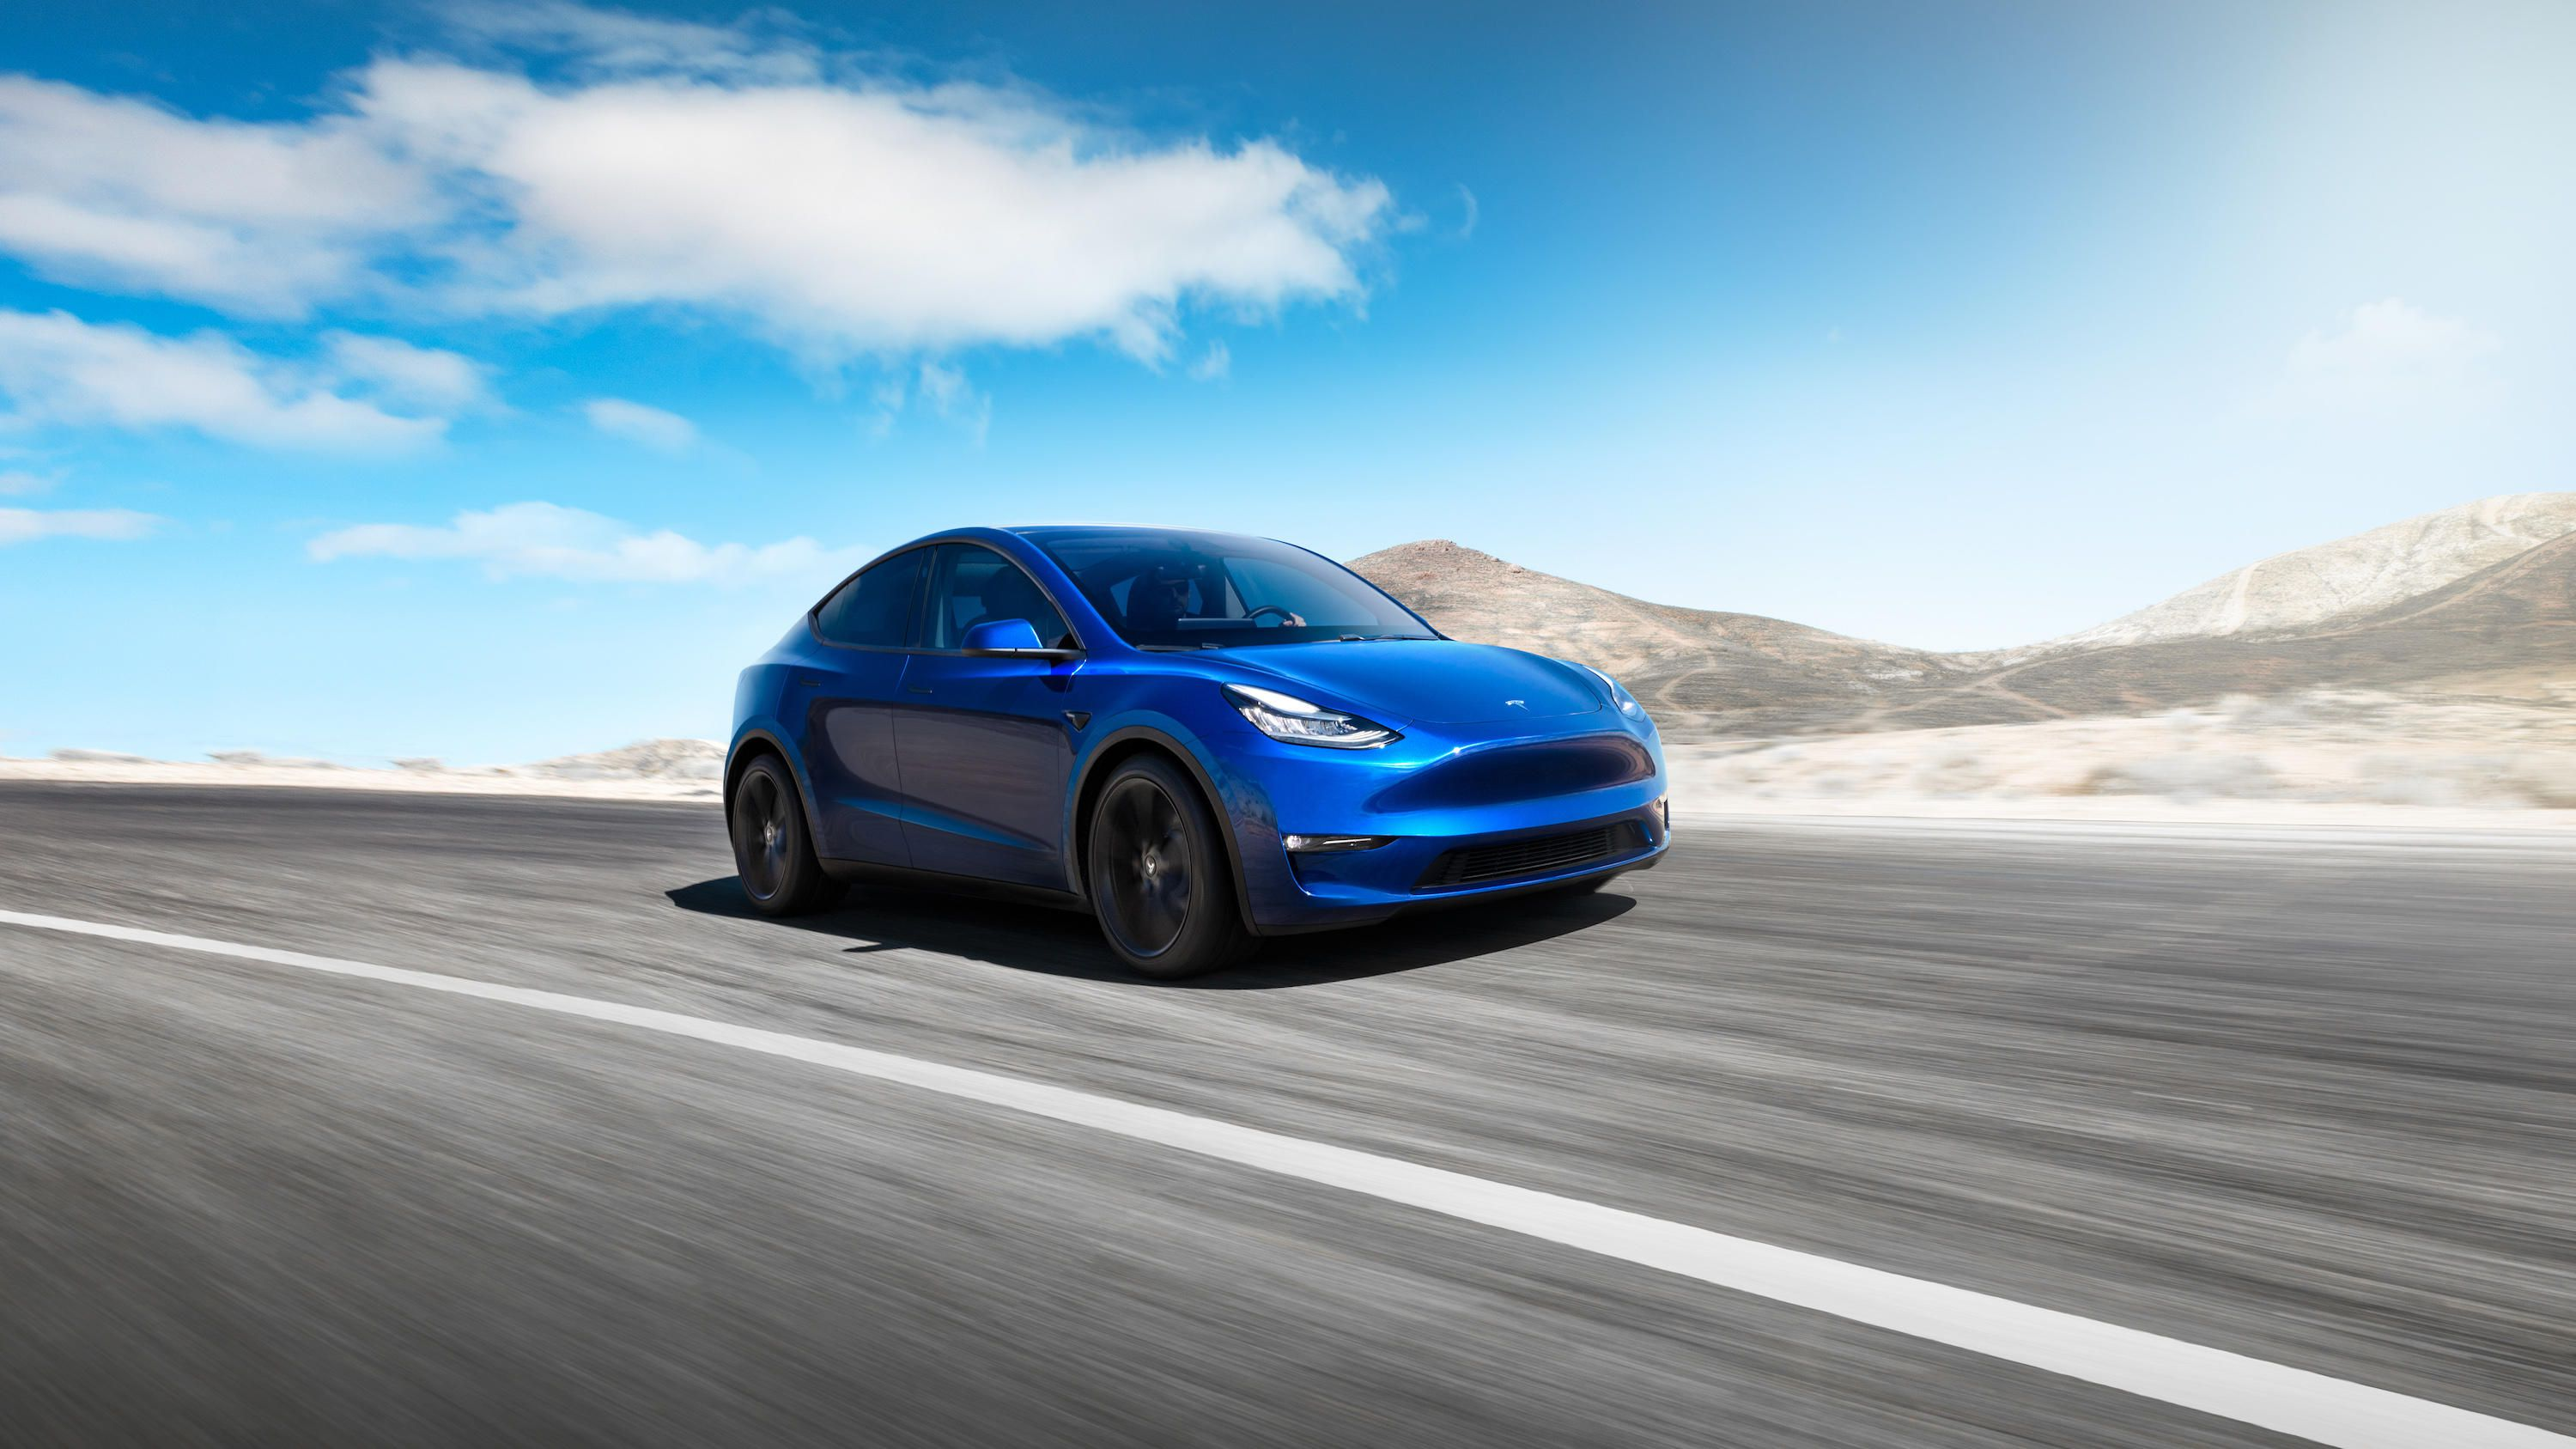 Some Tesla Model Ys are reportedly suffering from major quality issues